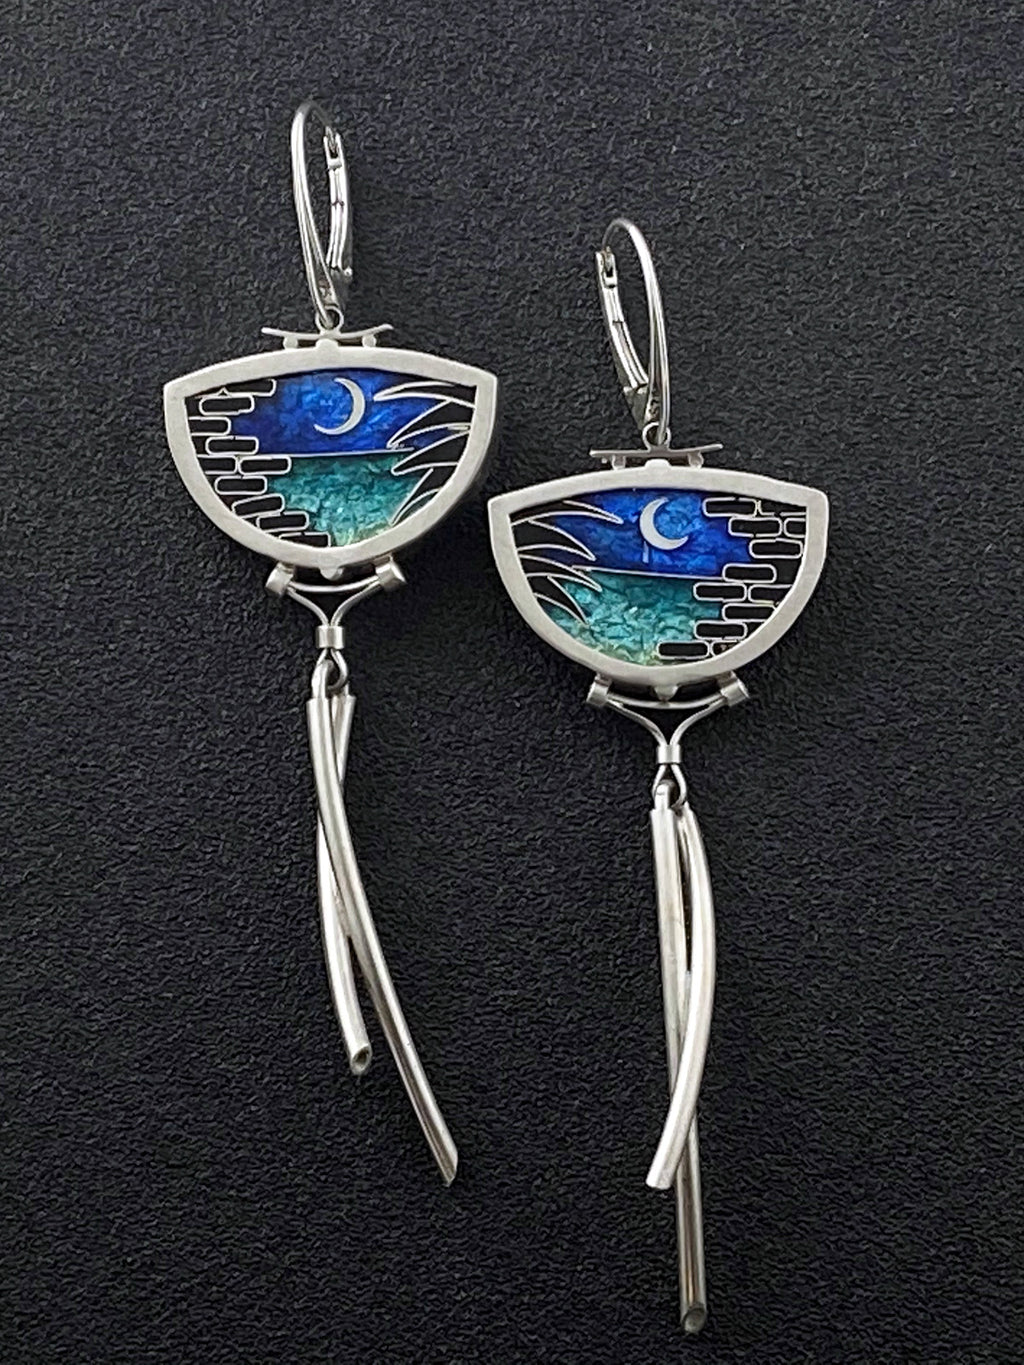 Gulf Coast - Fort Pickens Moonscape Earrings